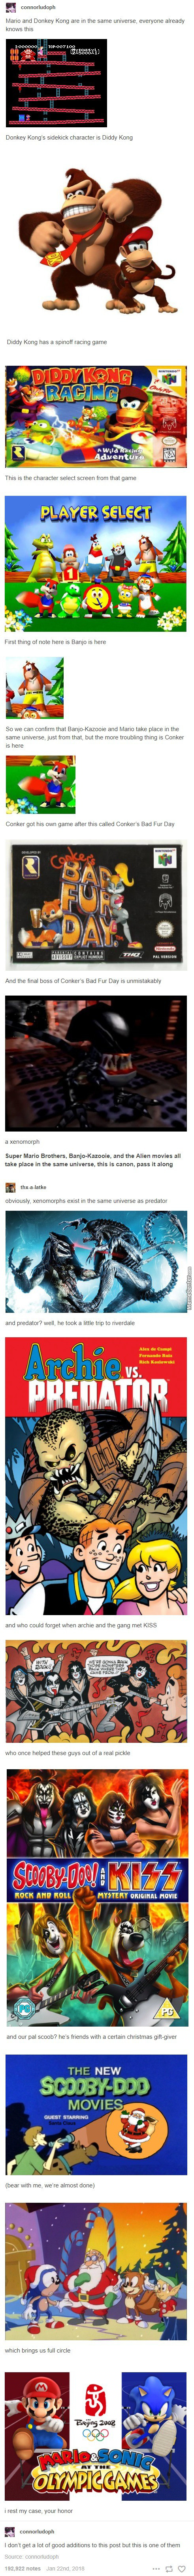 Can't Wait For The Predator To Face Off Againts Donkey Kong